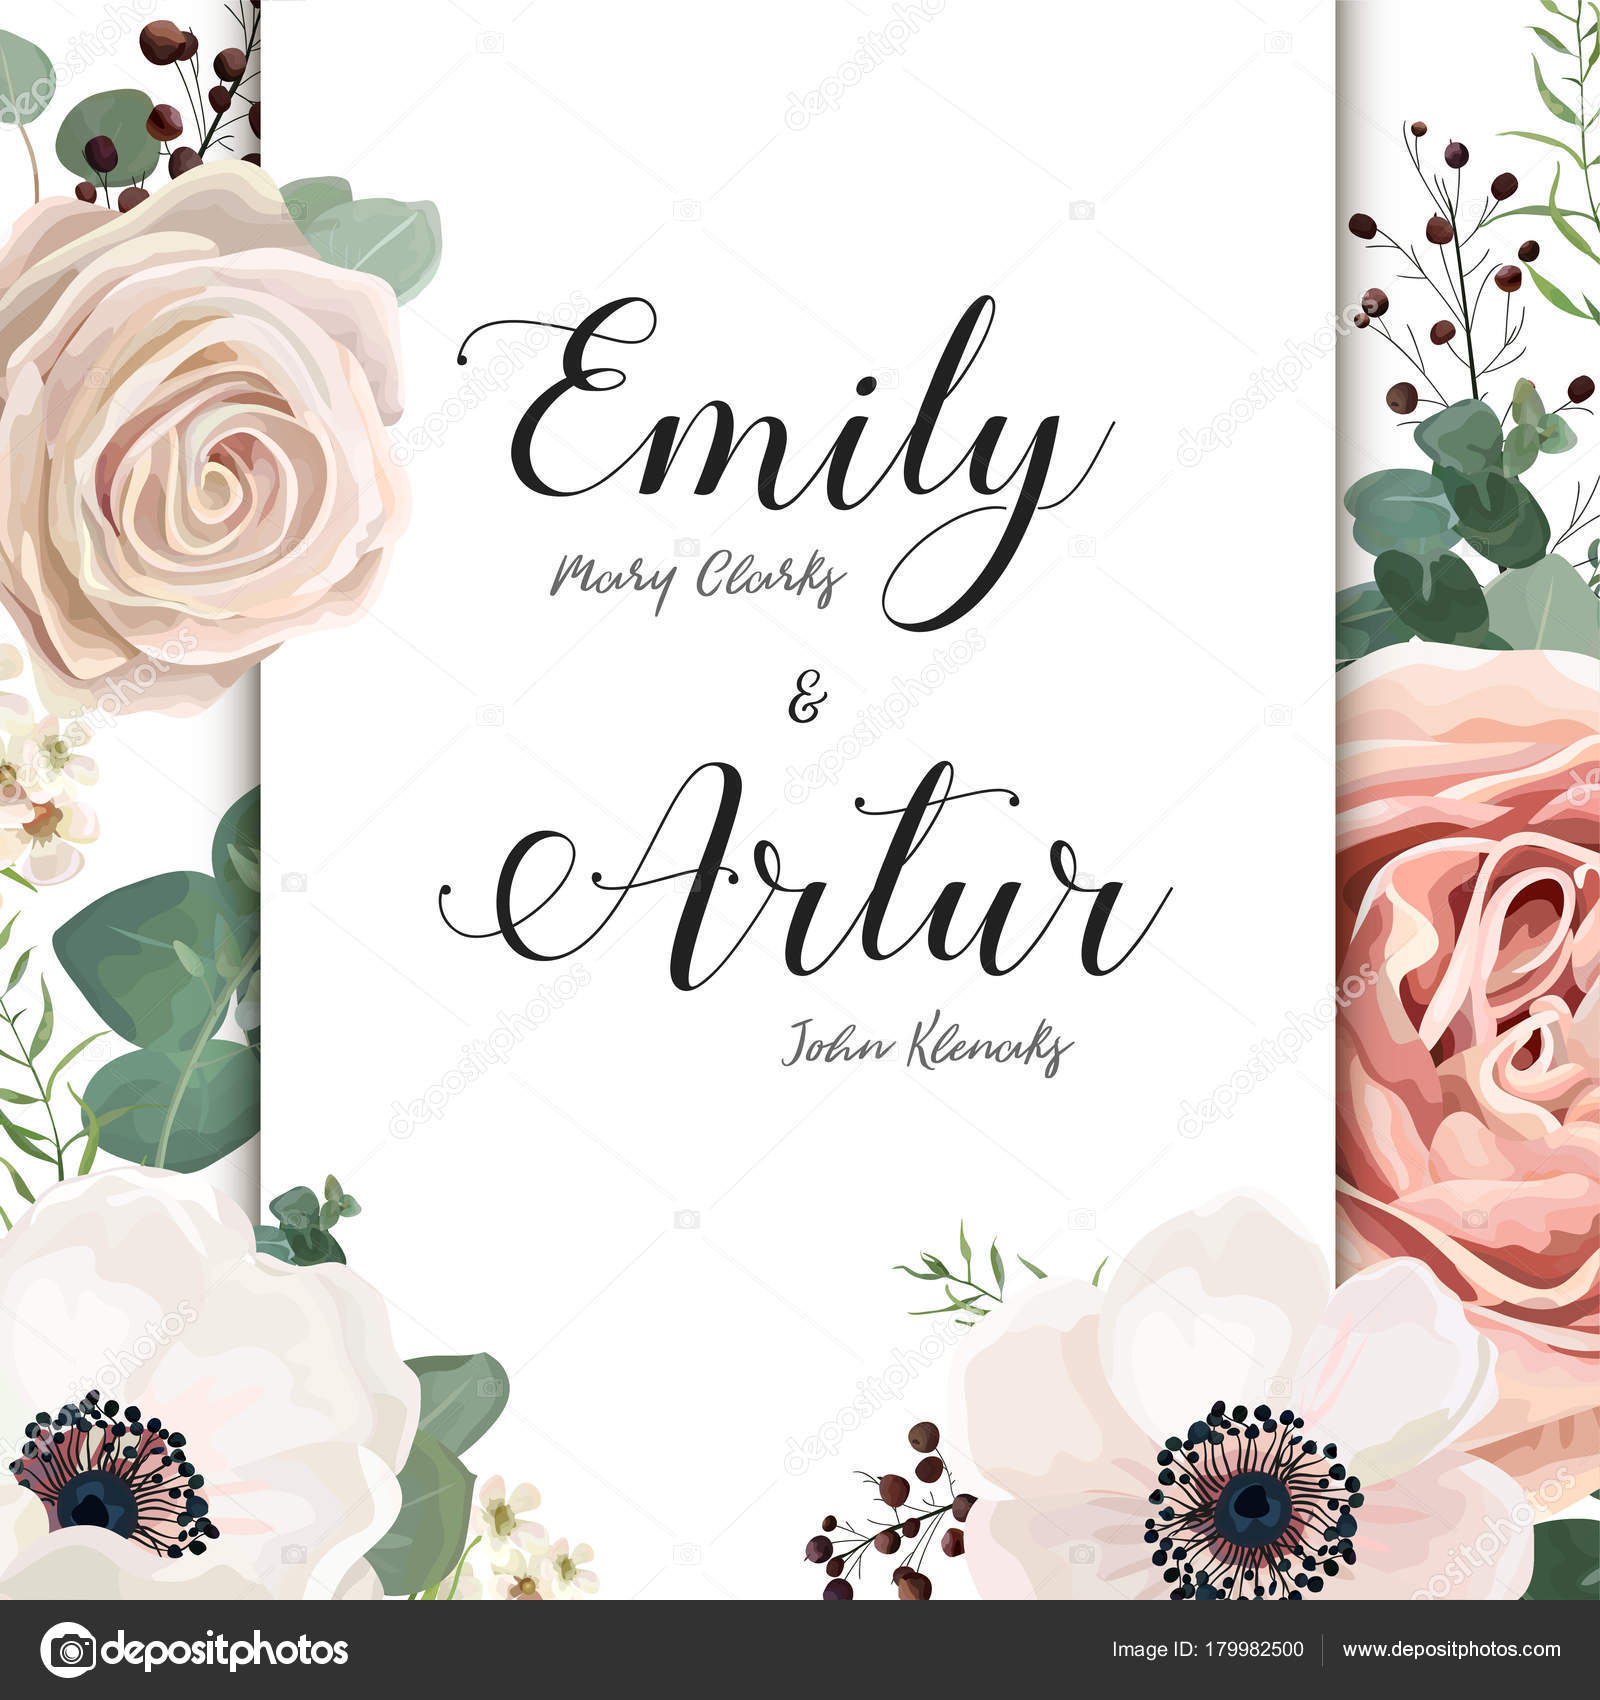 Floral Wedding Invitation elegant invite card vector Design: garden ...